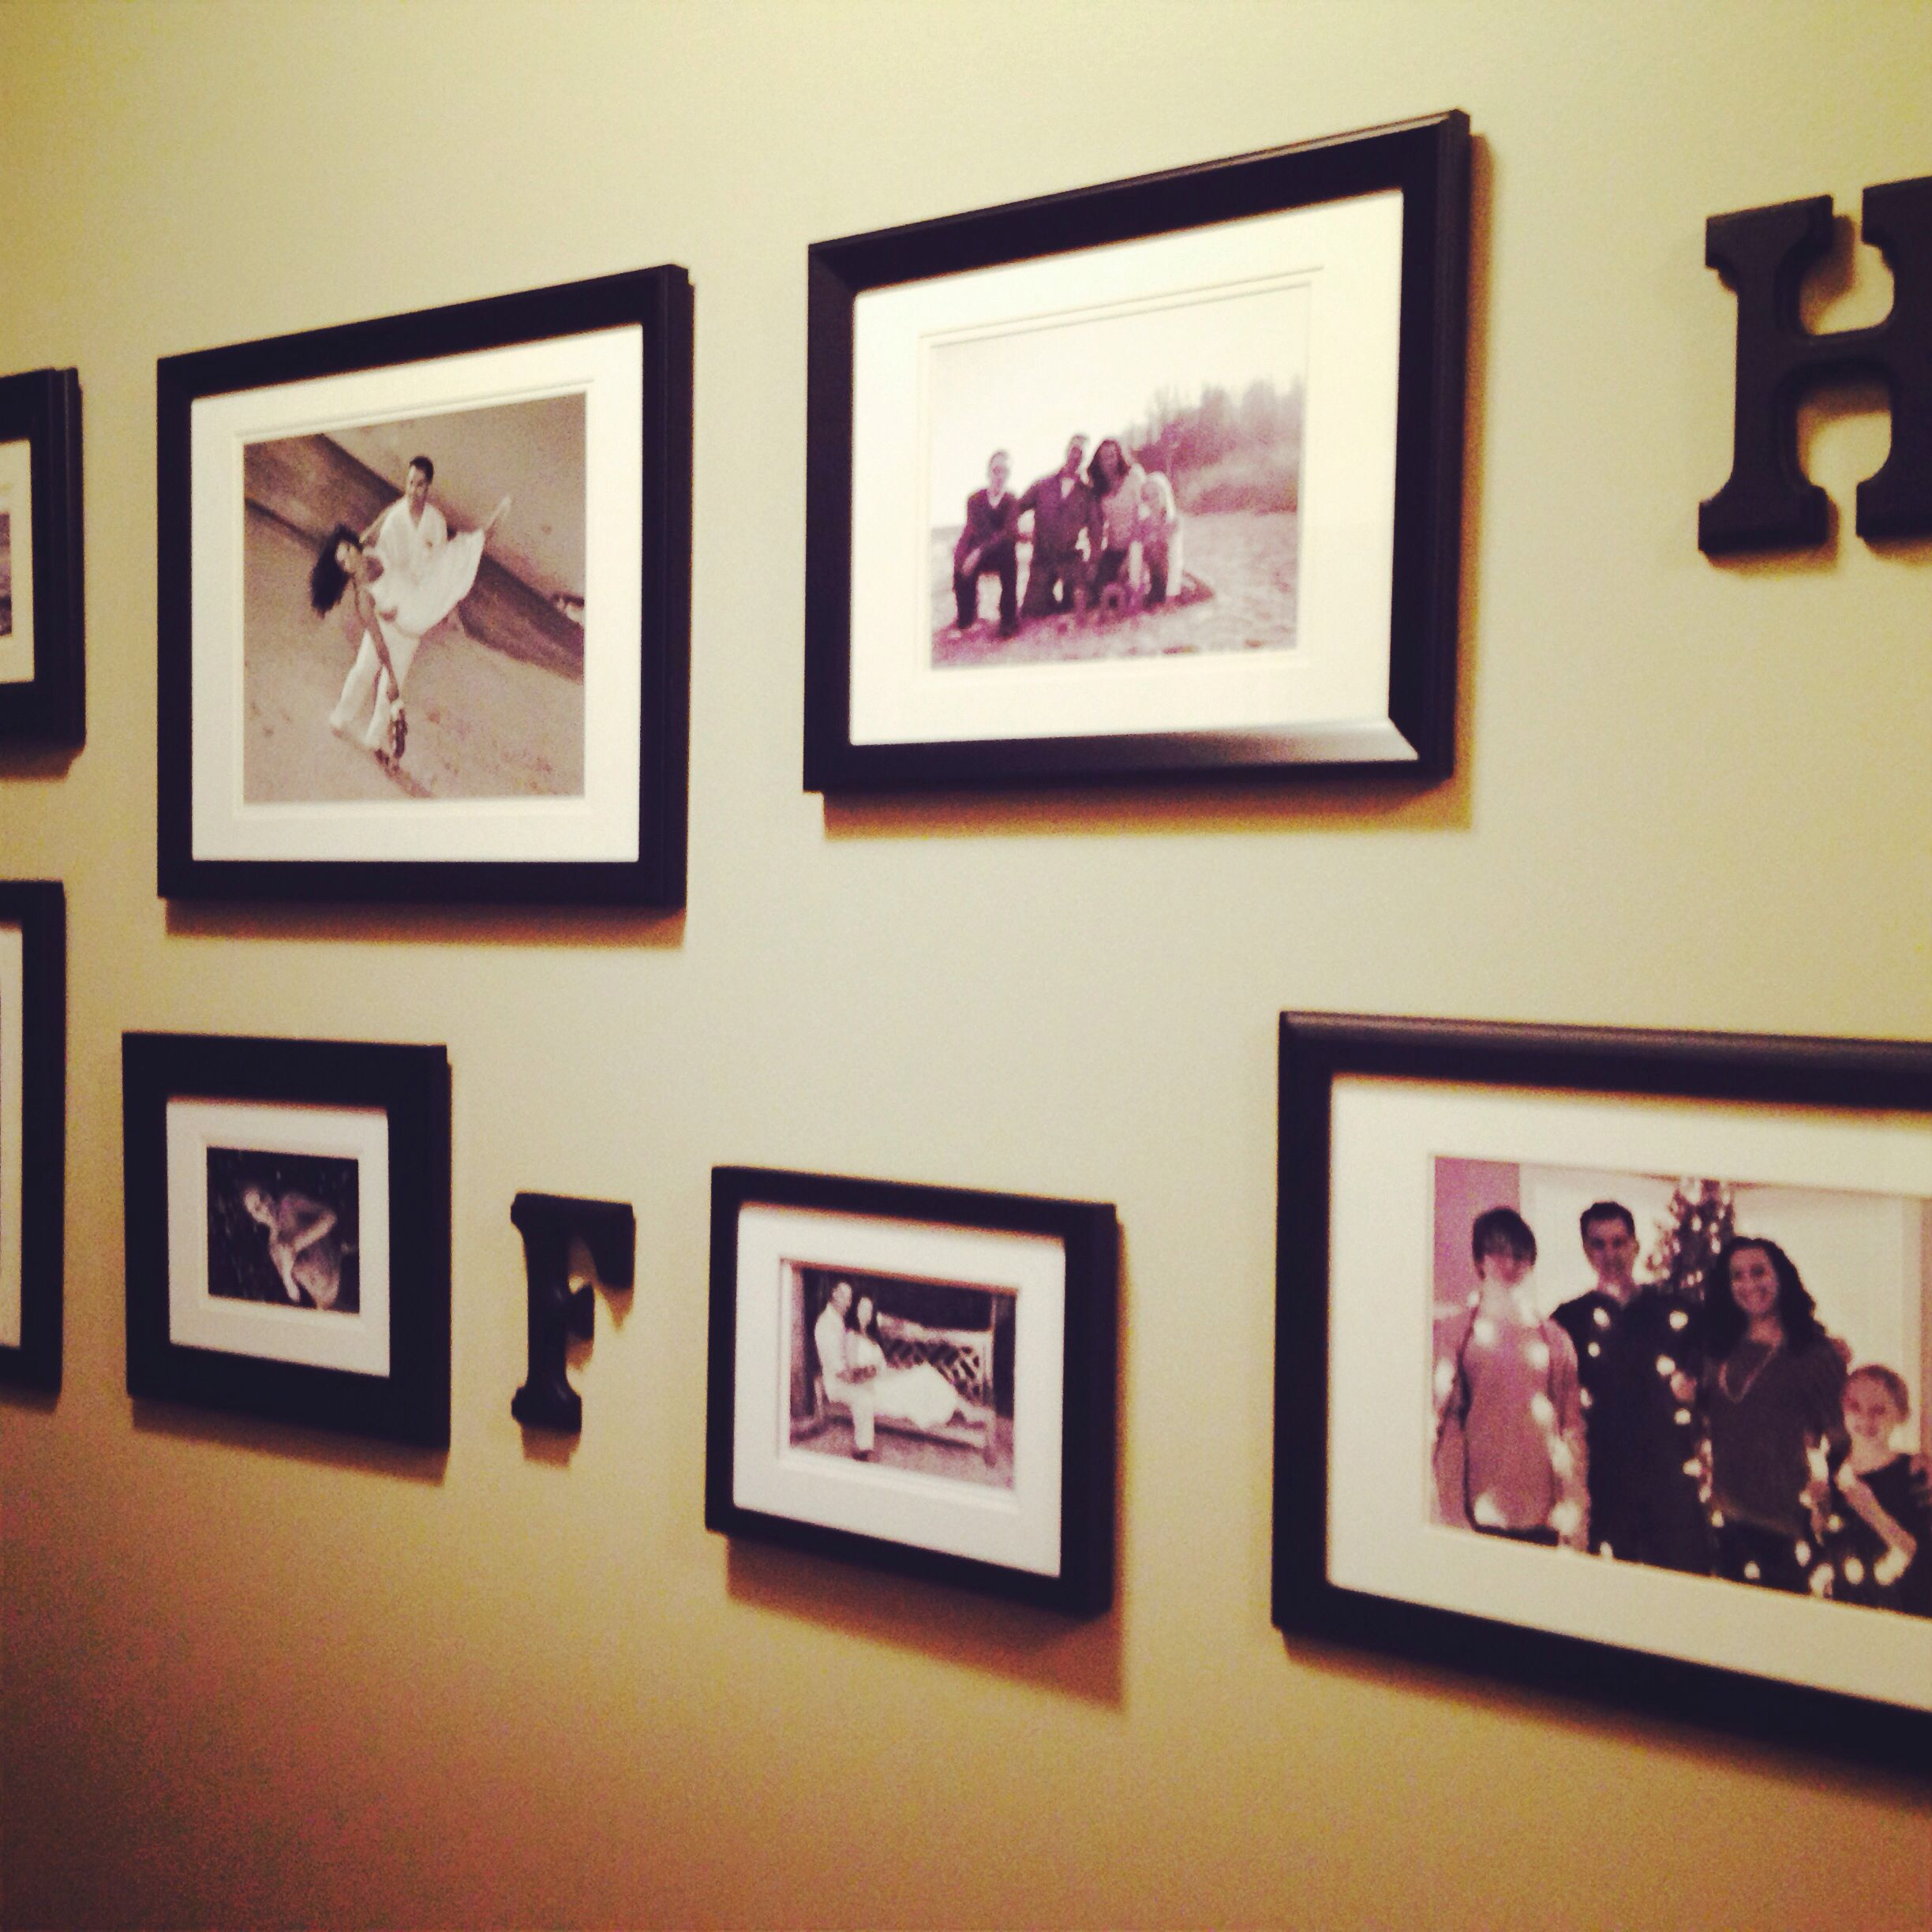 Family Photos Printed In Black And White And Framed In